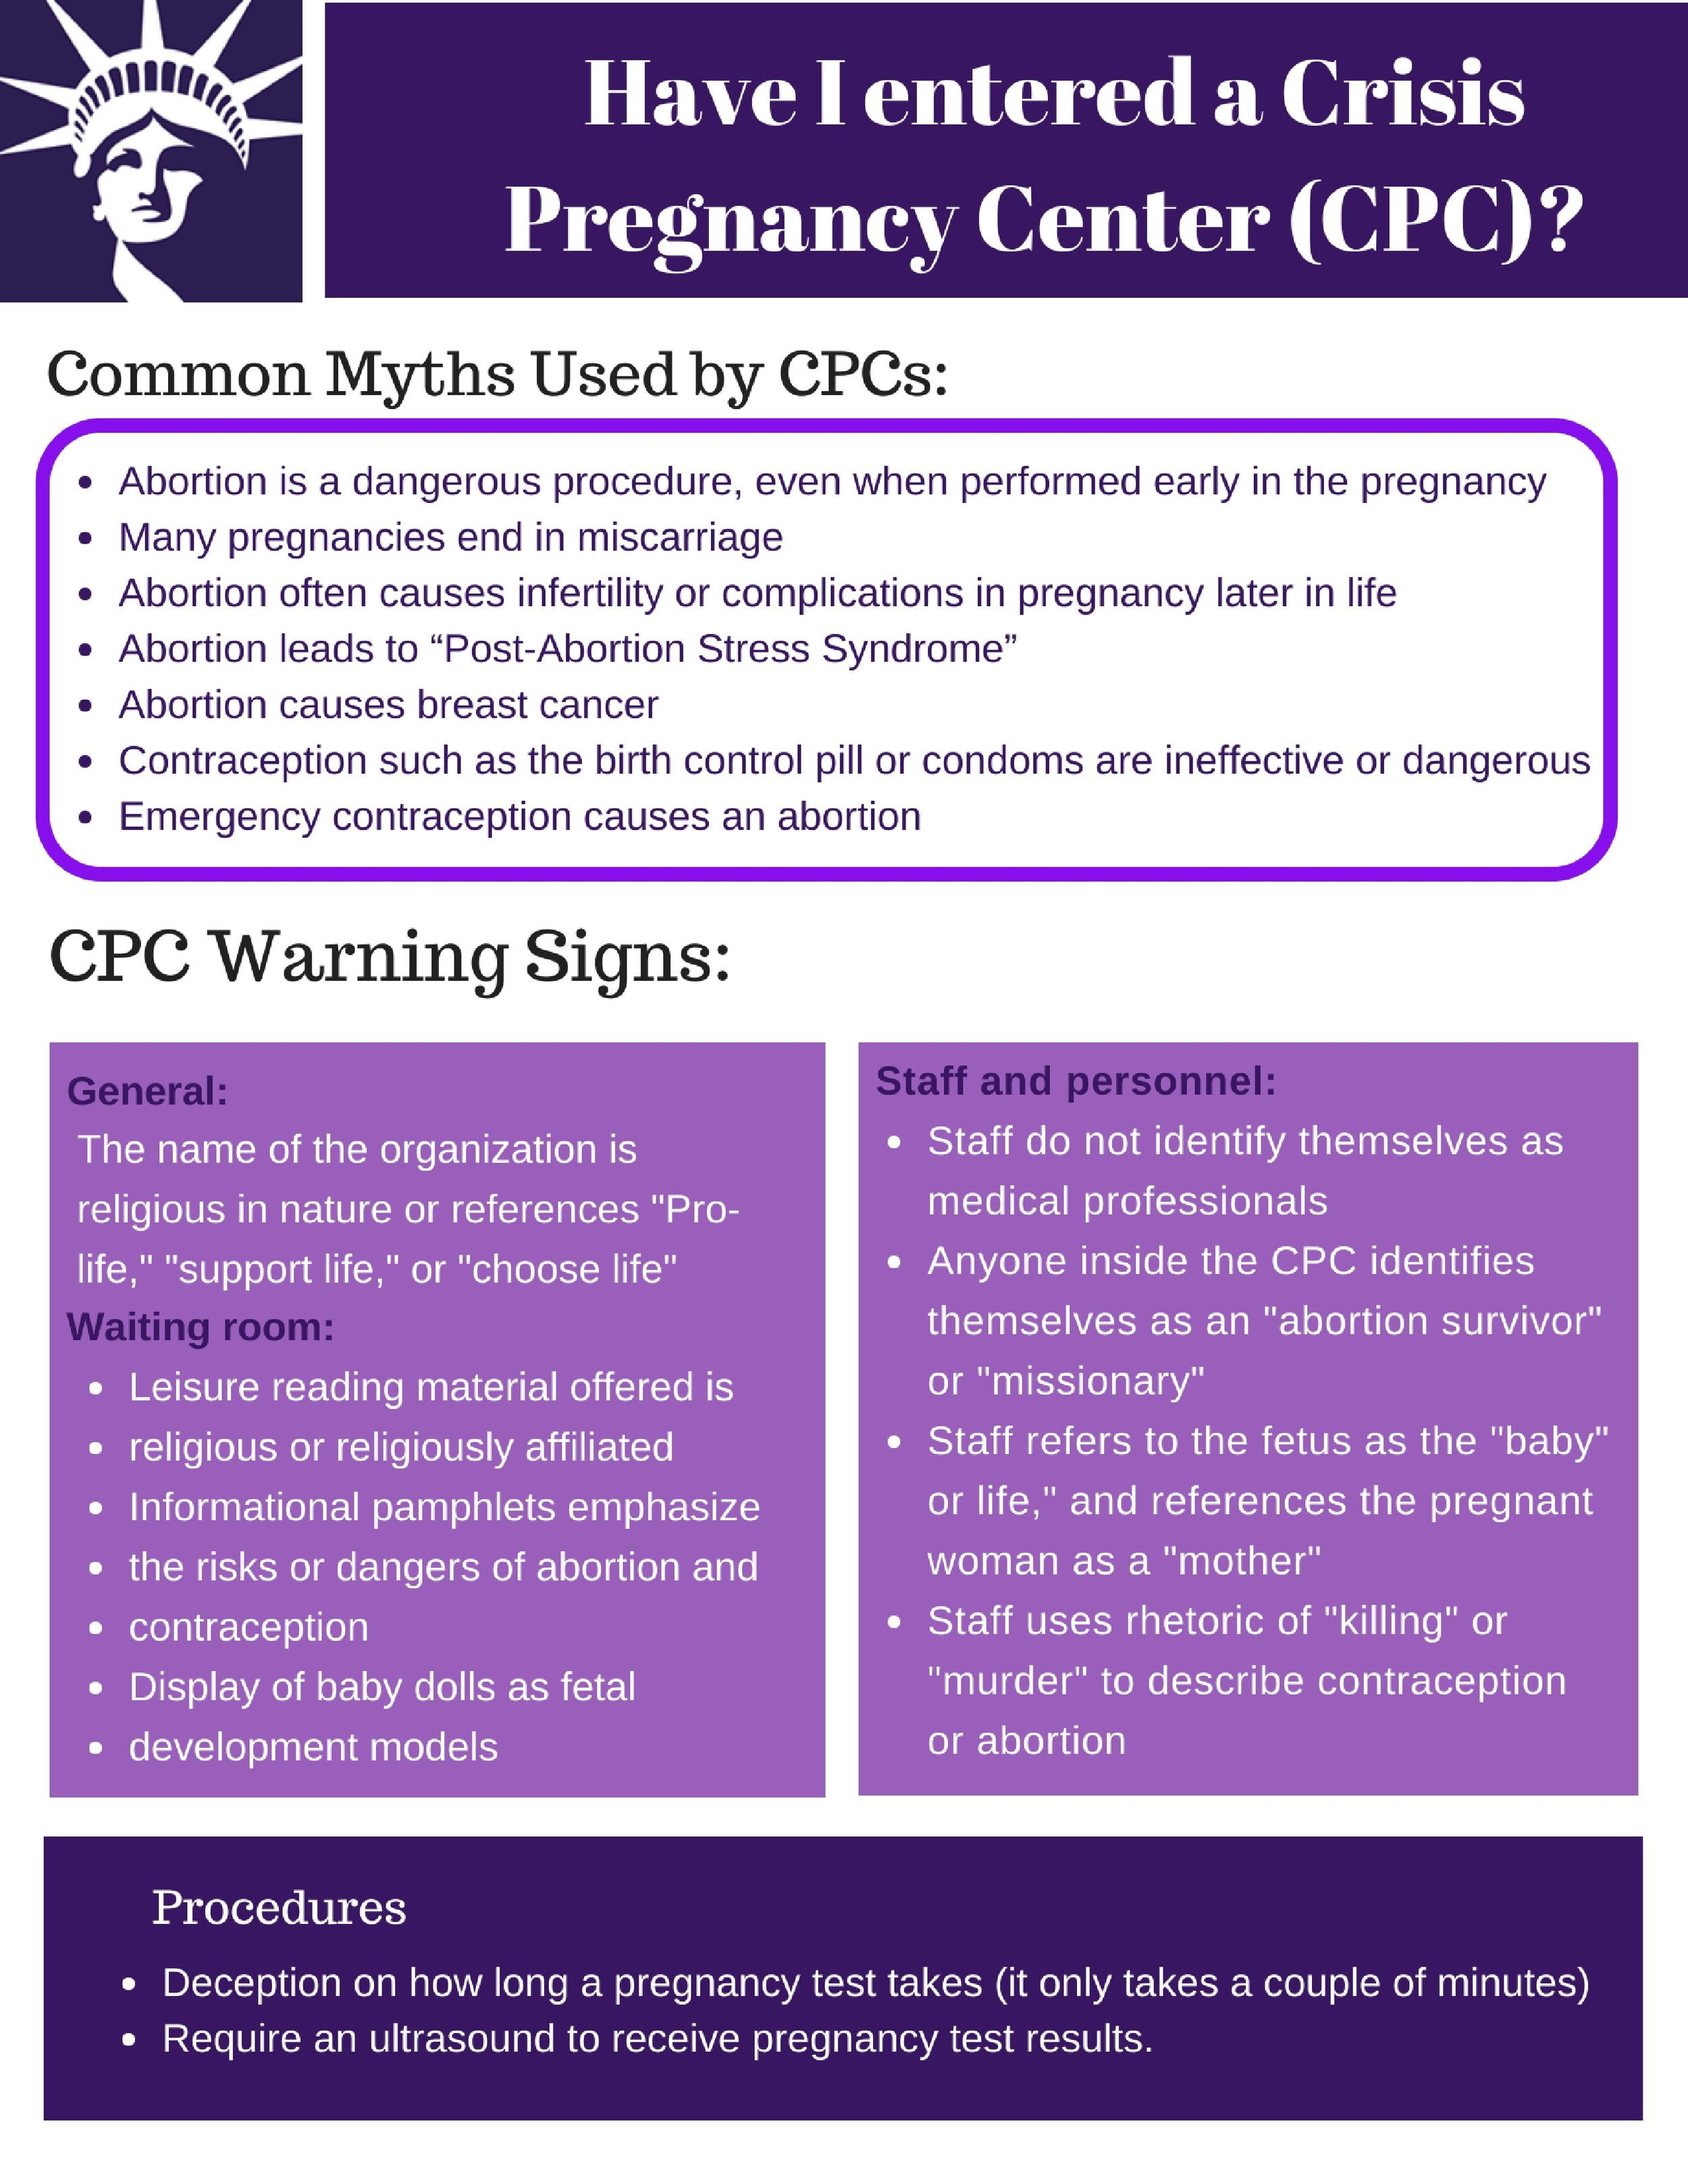 CPC Warning Signs.jpg